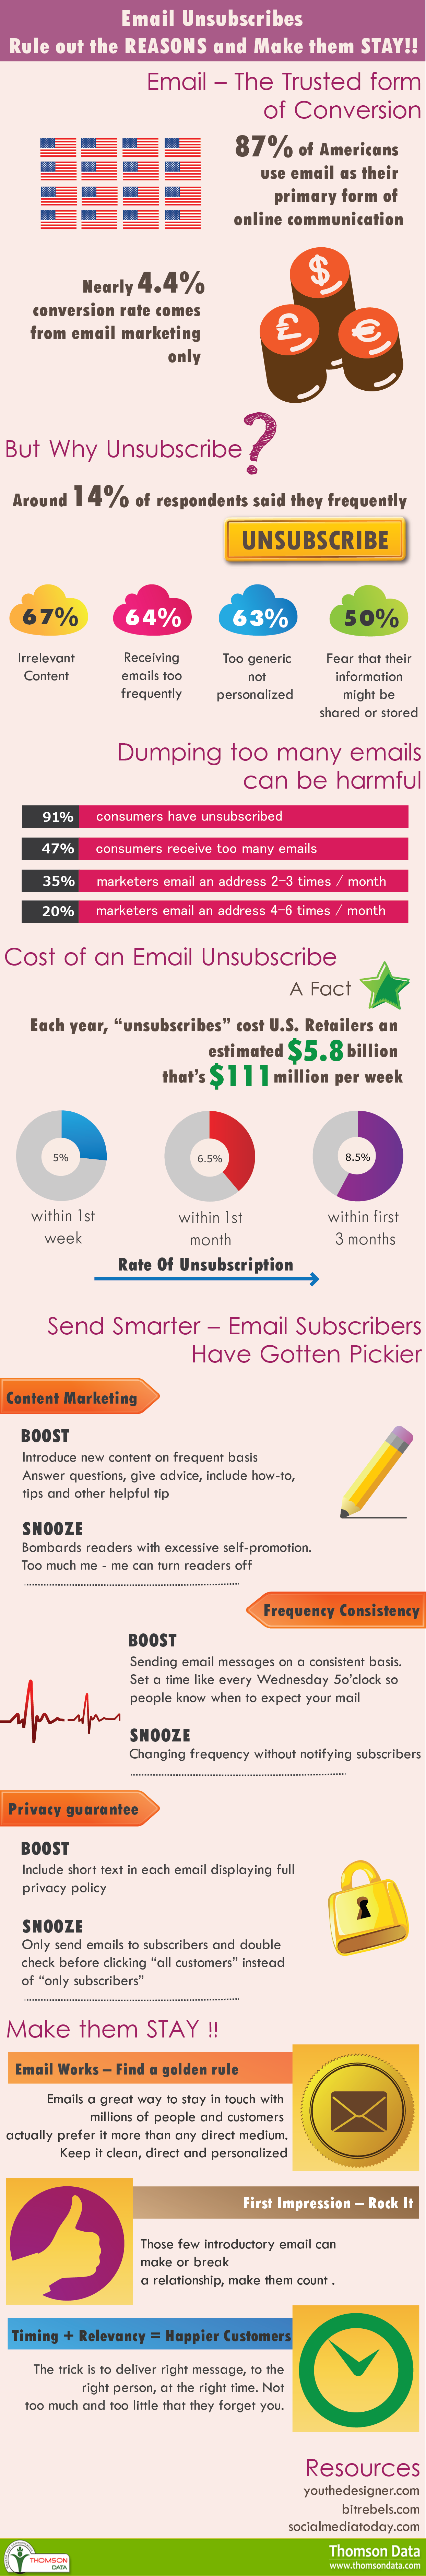 Email Unsubscribes - Rule out the REASONS and Make them STAY! [Infographic]